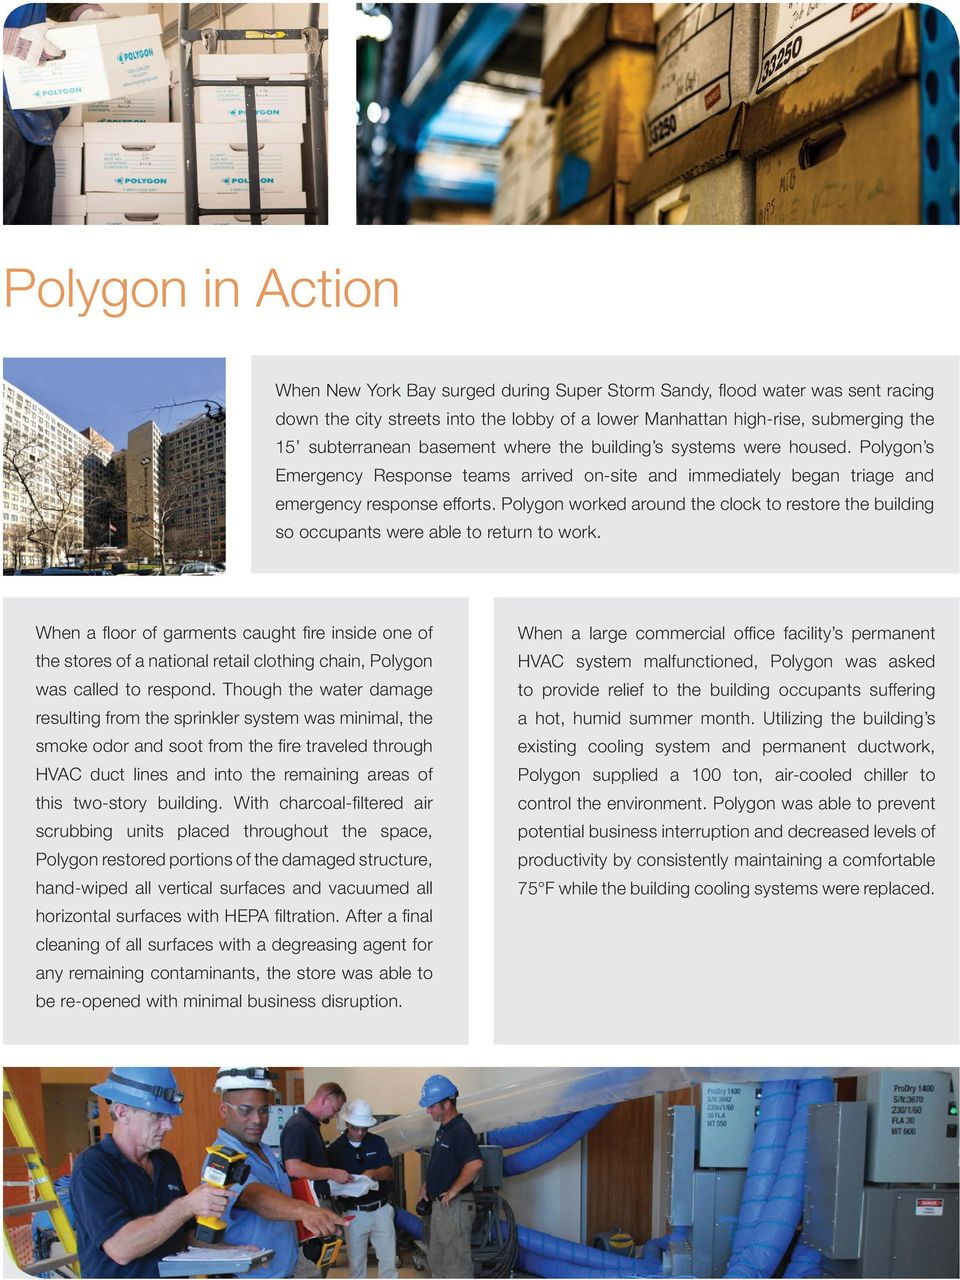 Polygon worked around the clock to restore the building so occupants were able to return to work.